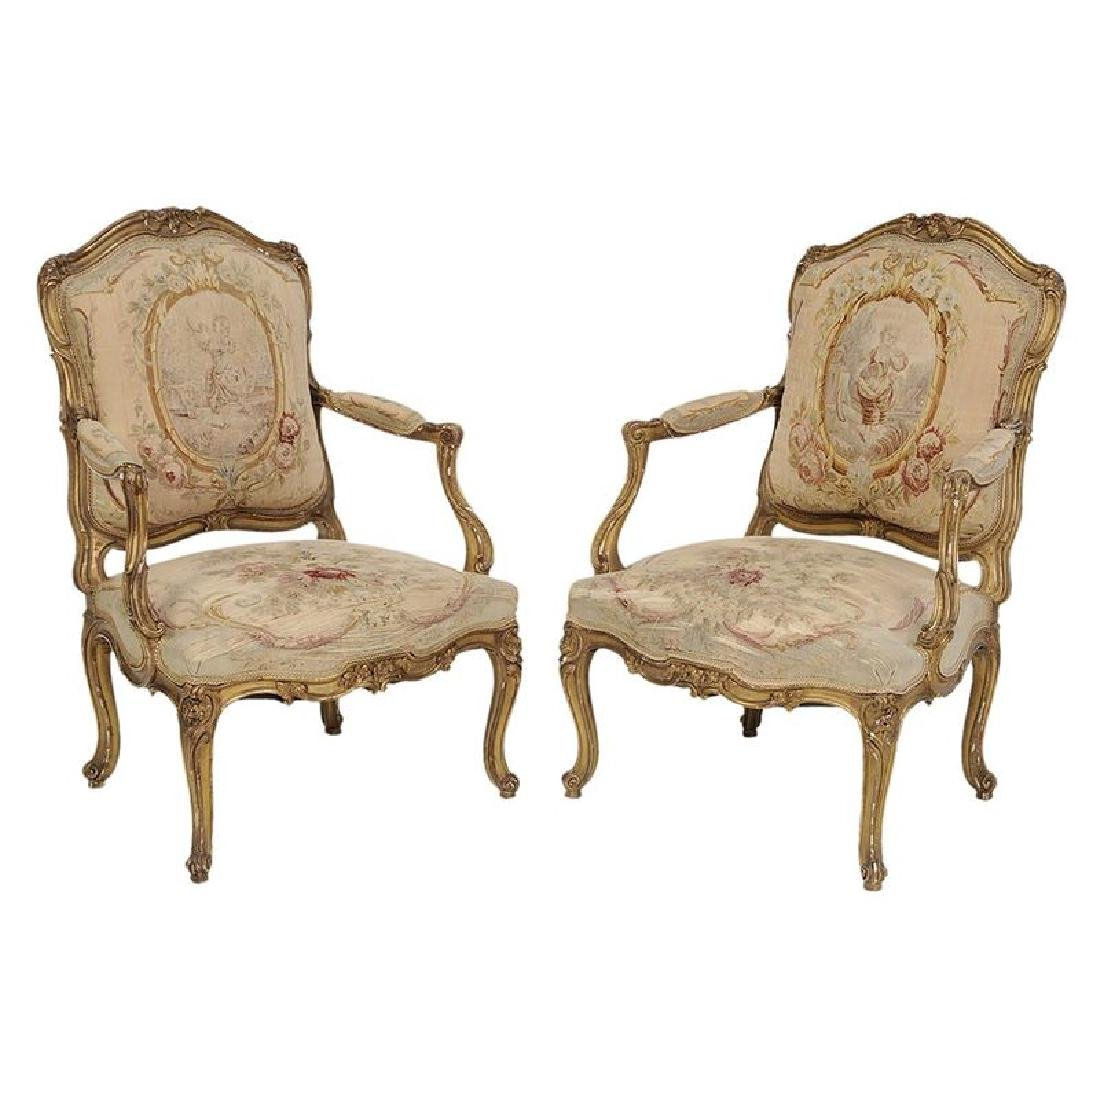 Louis XV Style Carved and Gilt Open Arm Chairs